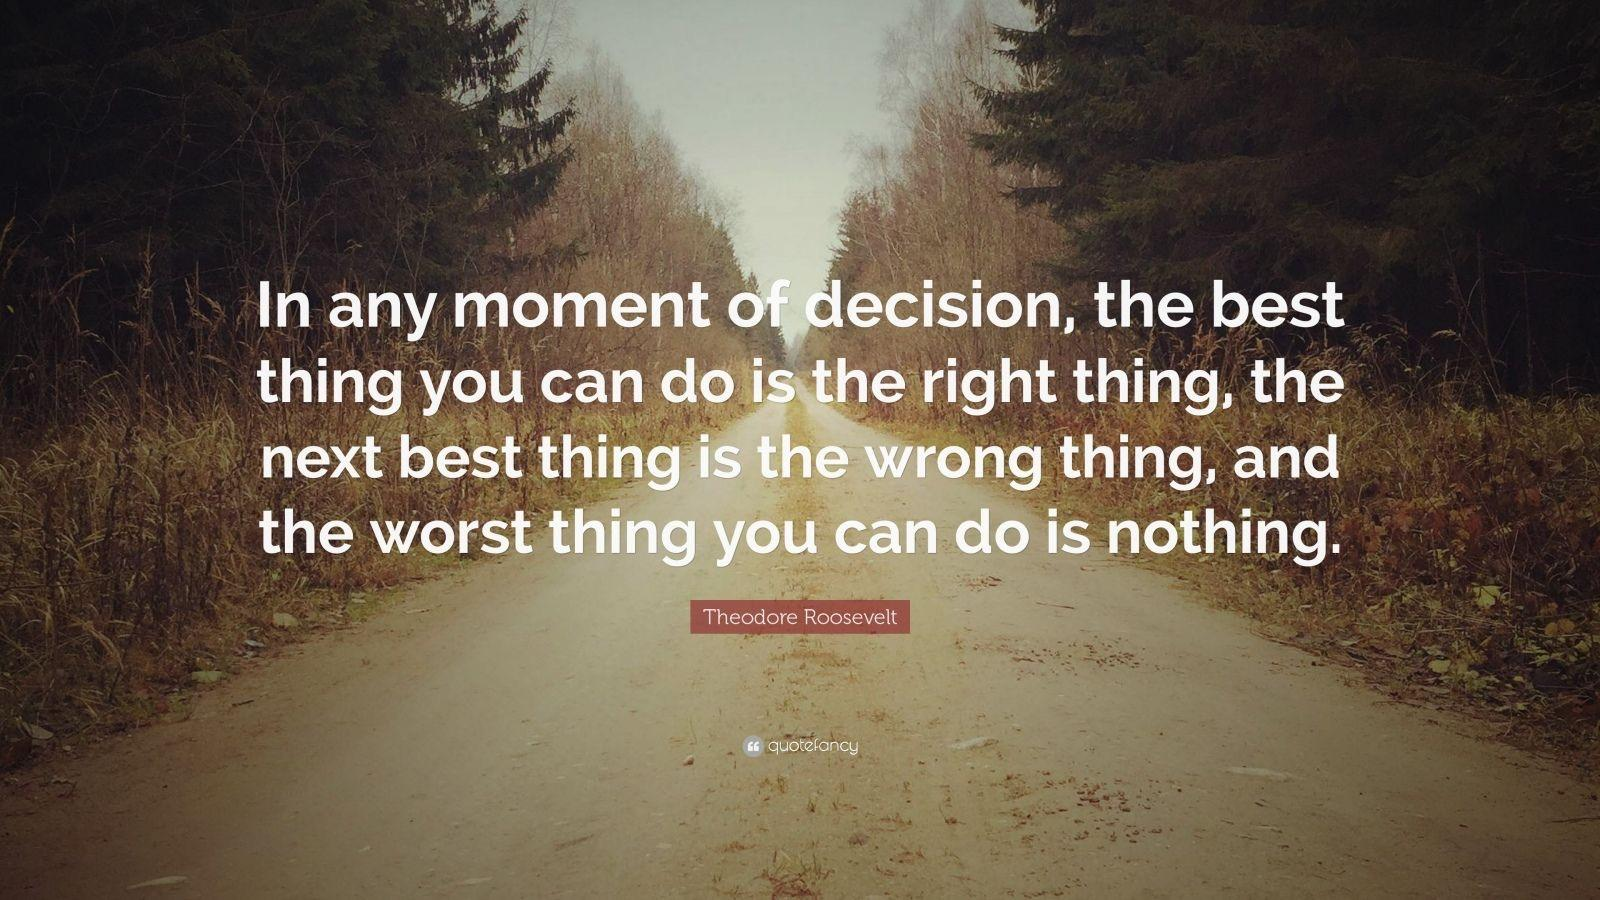 """In any moment of decision, the best thing you can do is the right thing, the next best thing is the wrong thing, and the worst thing you can do is nothing.""-Theodore Roosevelt [1600×900]"